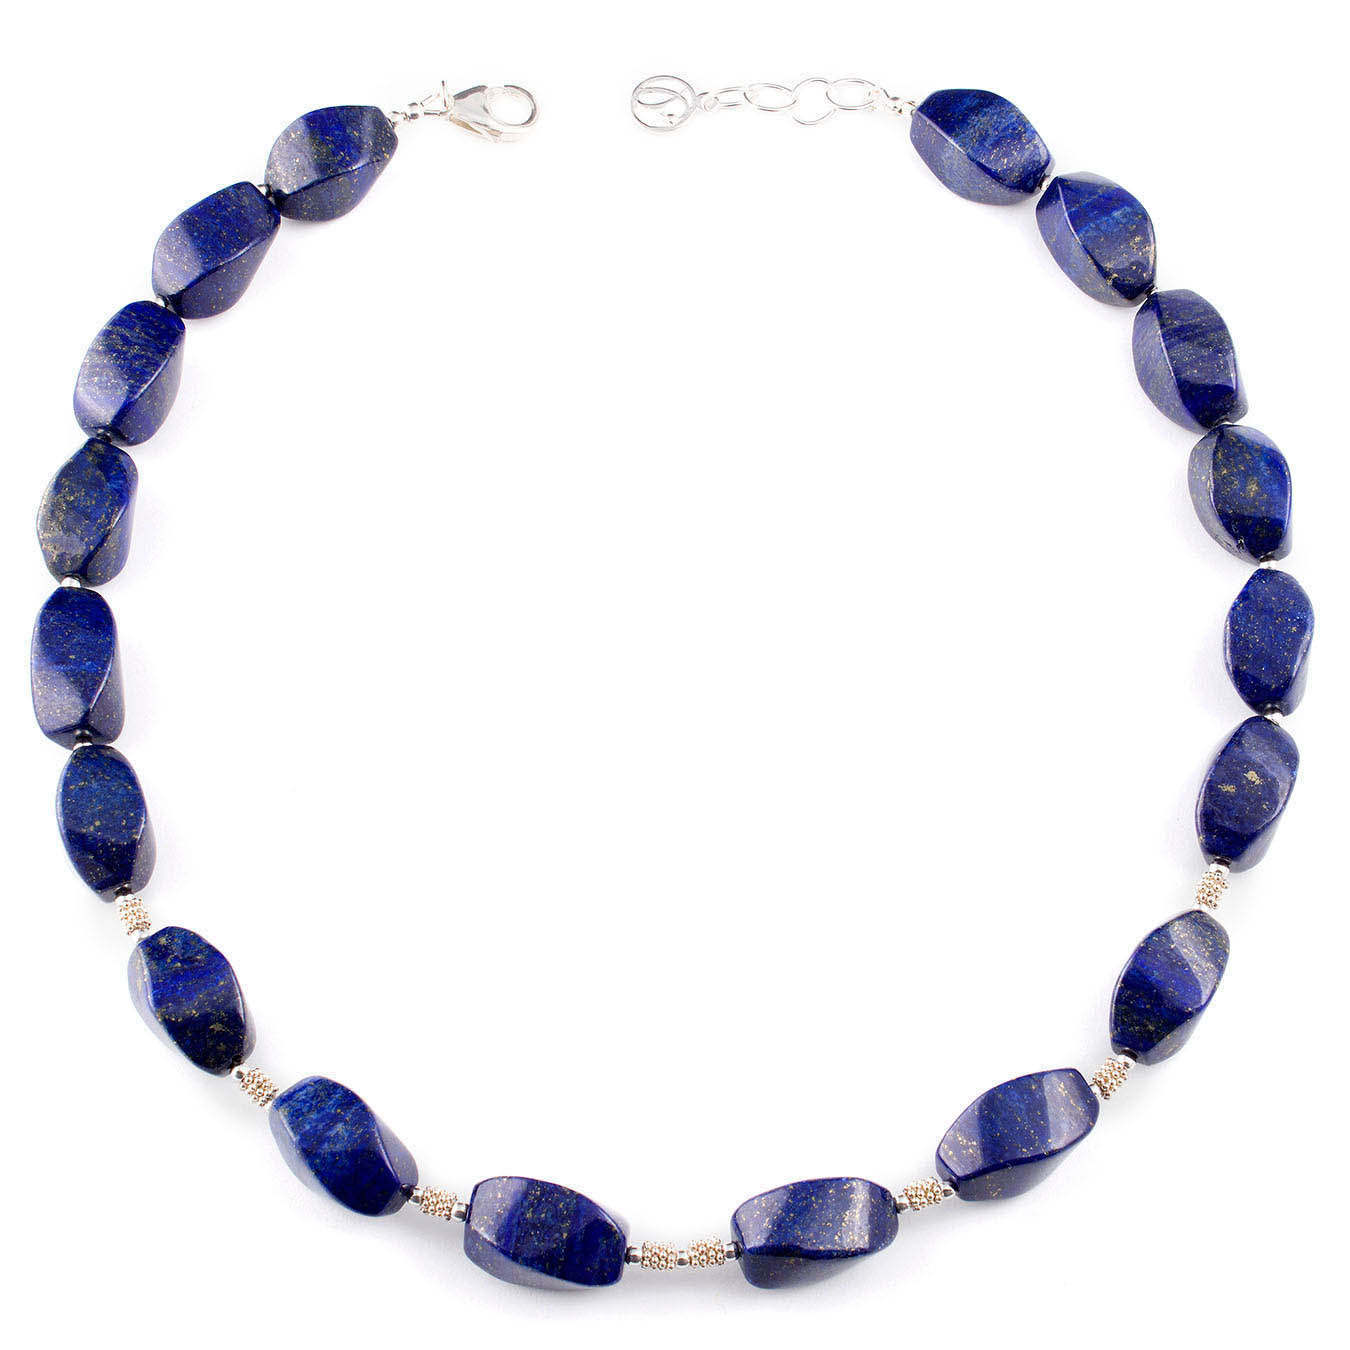 Beaded jewelry necklace made with lapis lazuli and silver accent